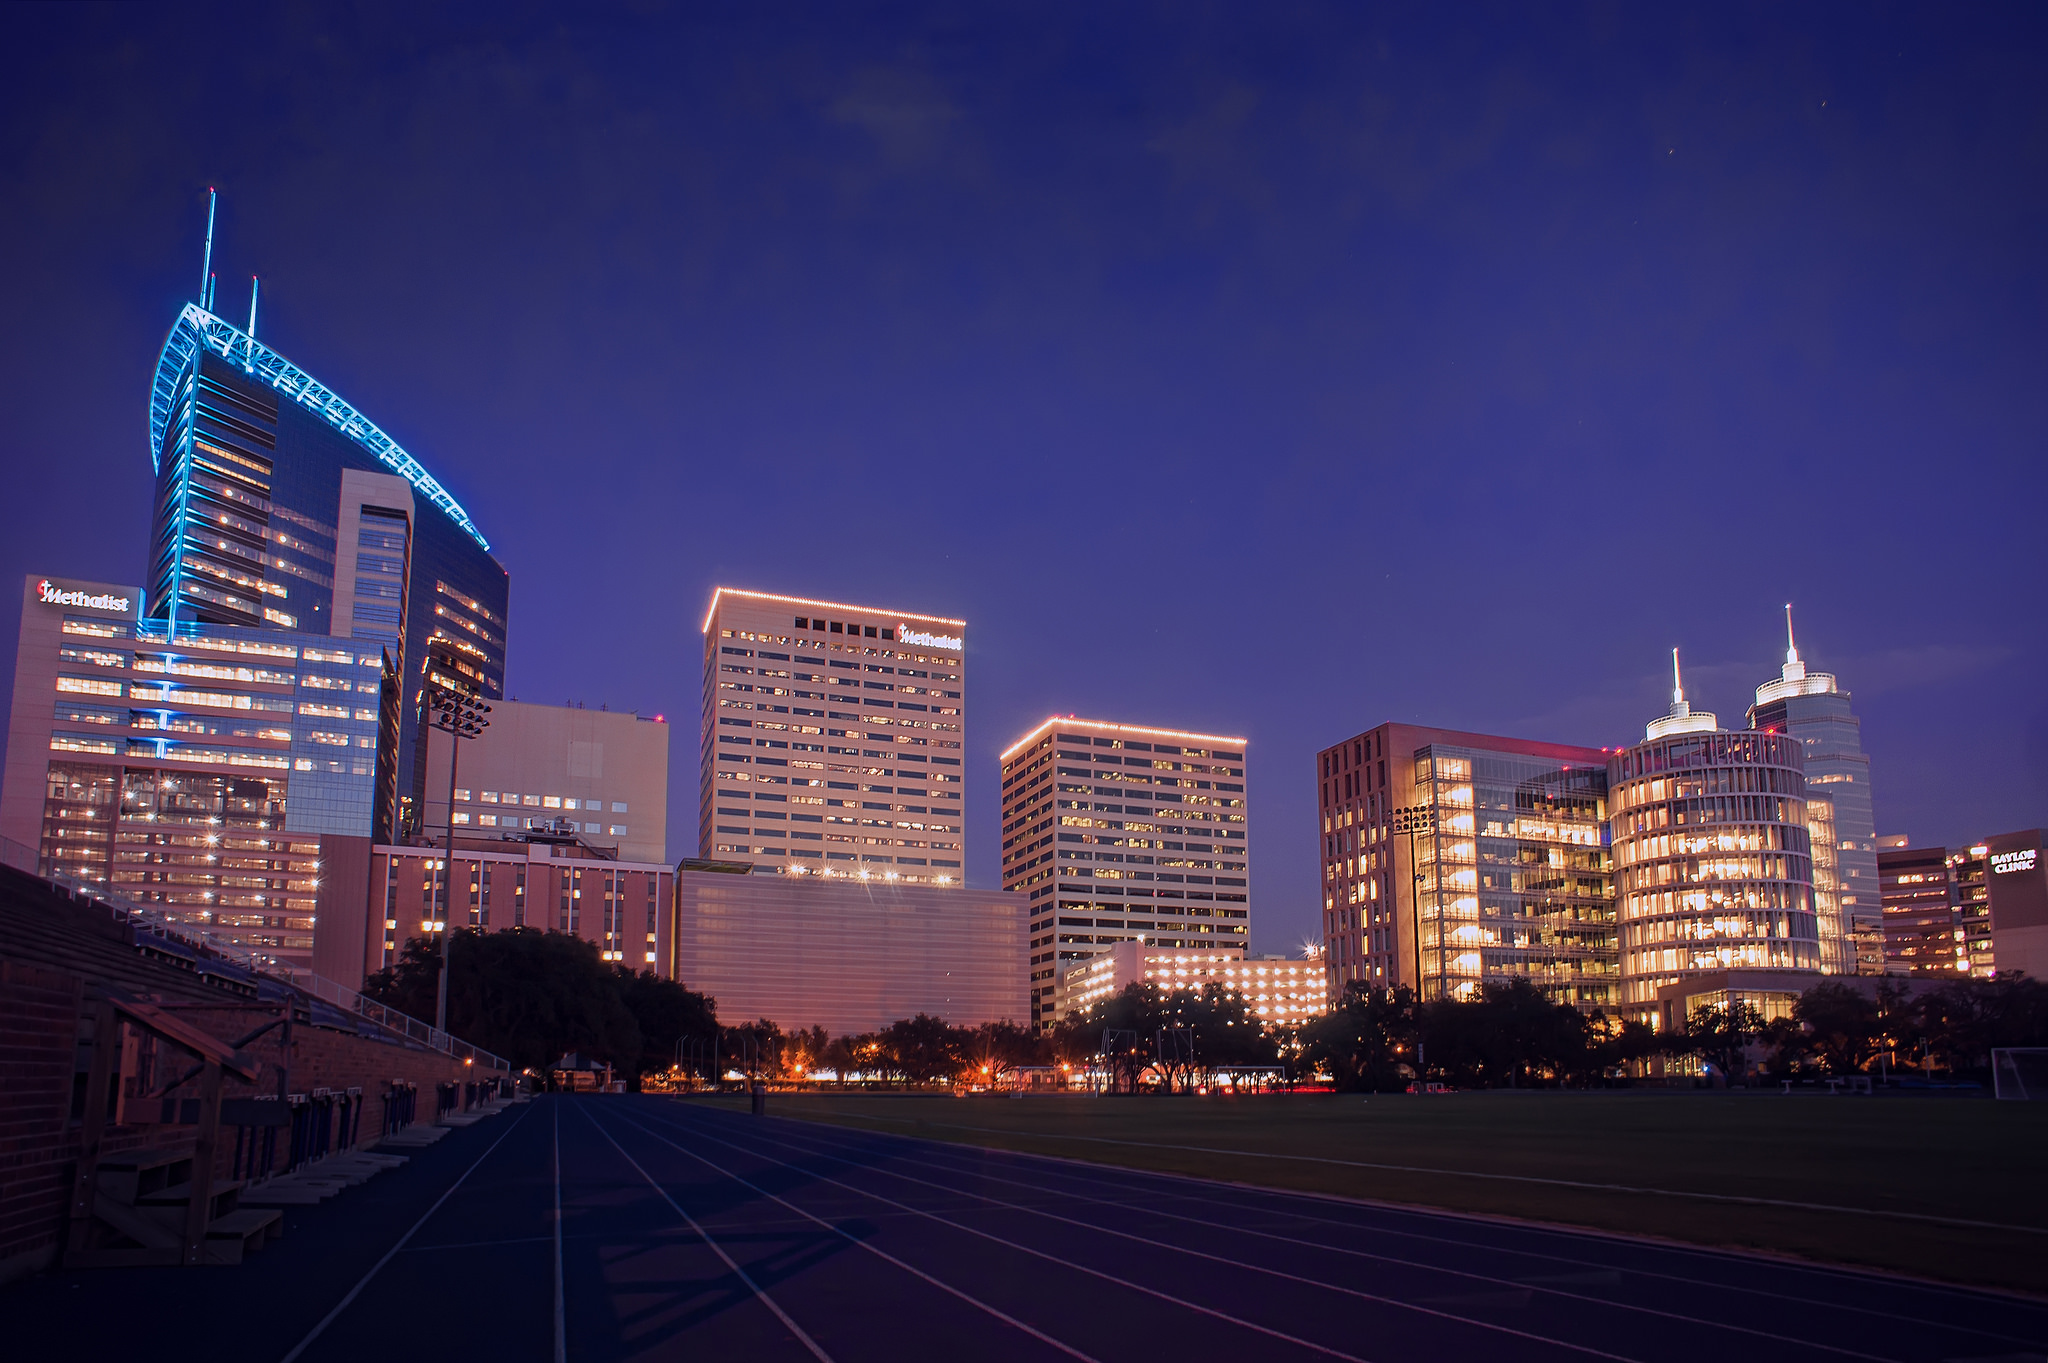 Texas Medical Center skyline. Photo by Katie Haugland Bowen, Reproduced under Creative Commons license.